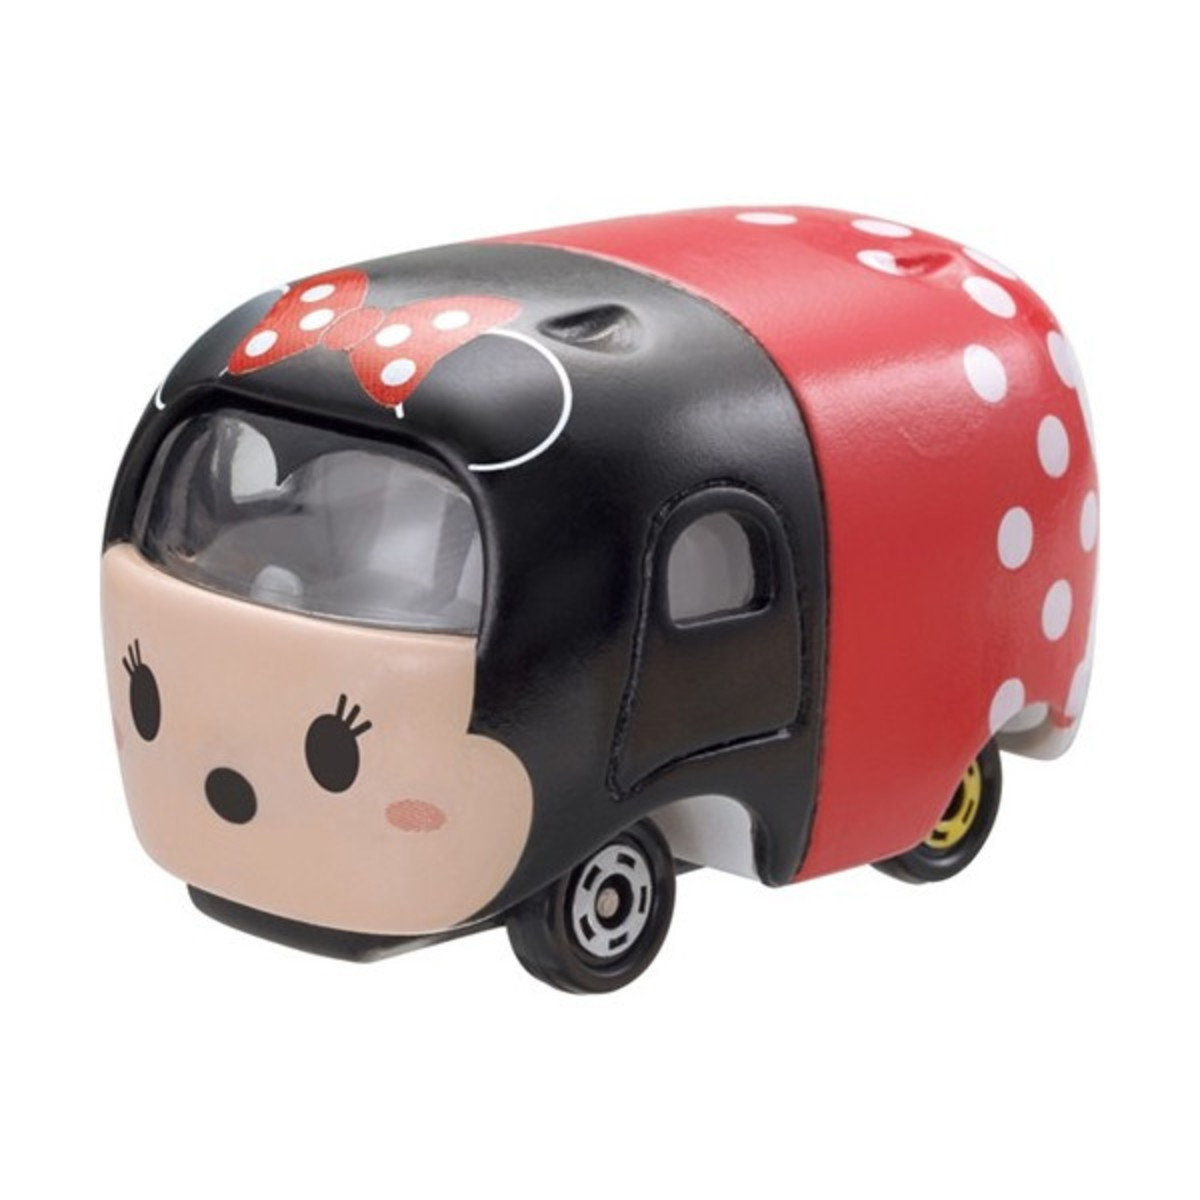 Disney Motors Tsum Tsum Minnie Mouse